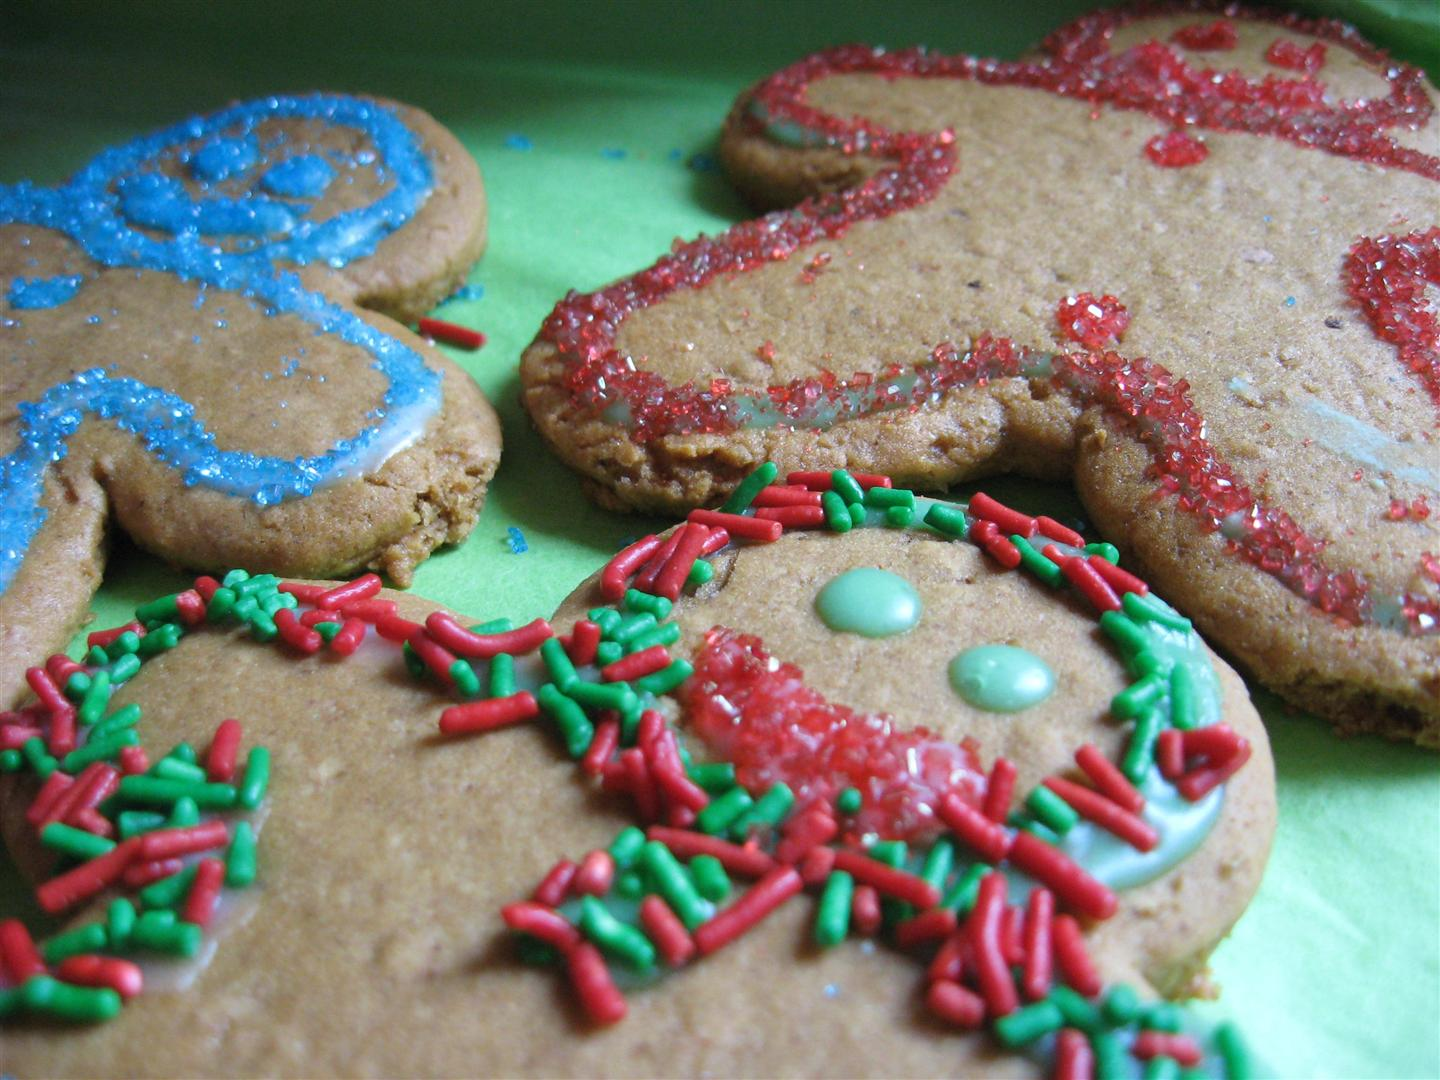 Kitchen Grrrls.: Orange Soft Gingerbread Cookies